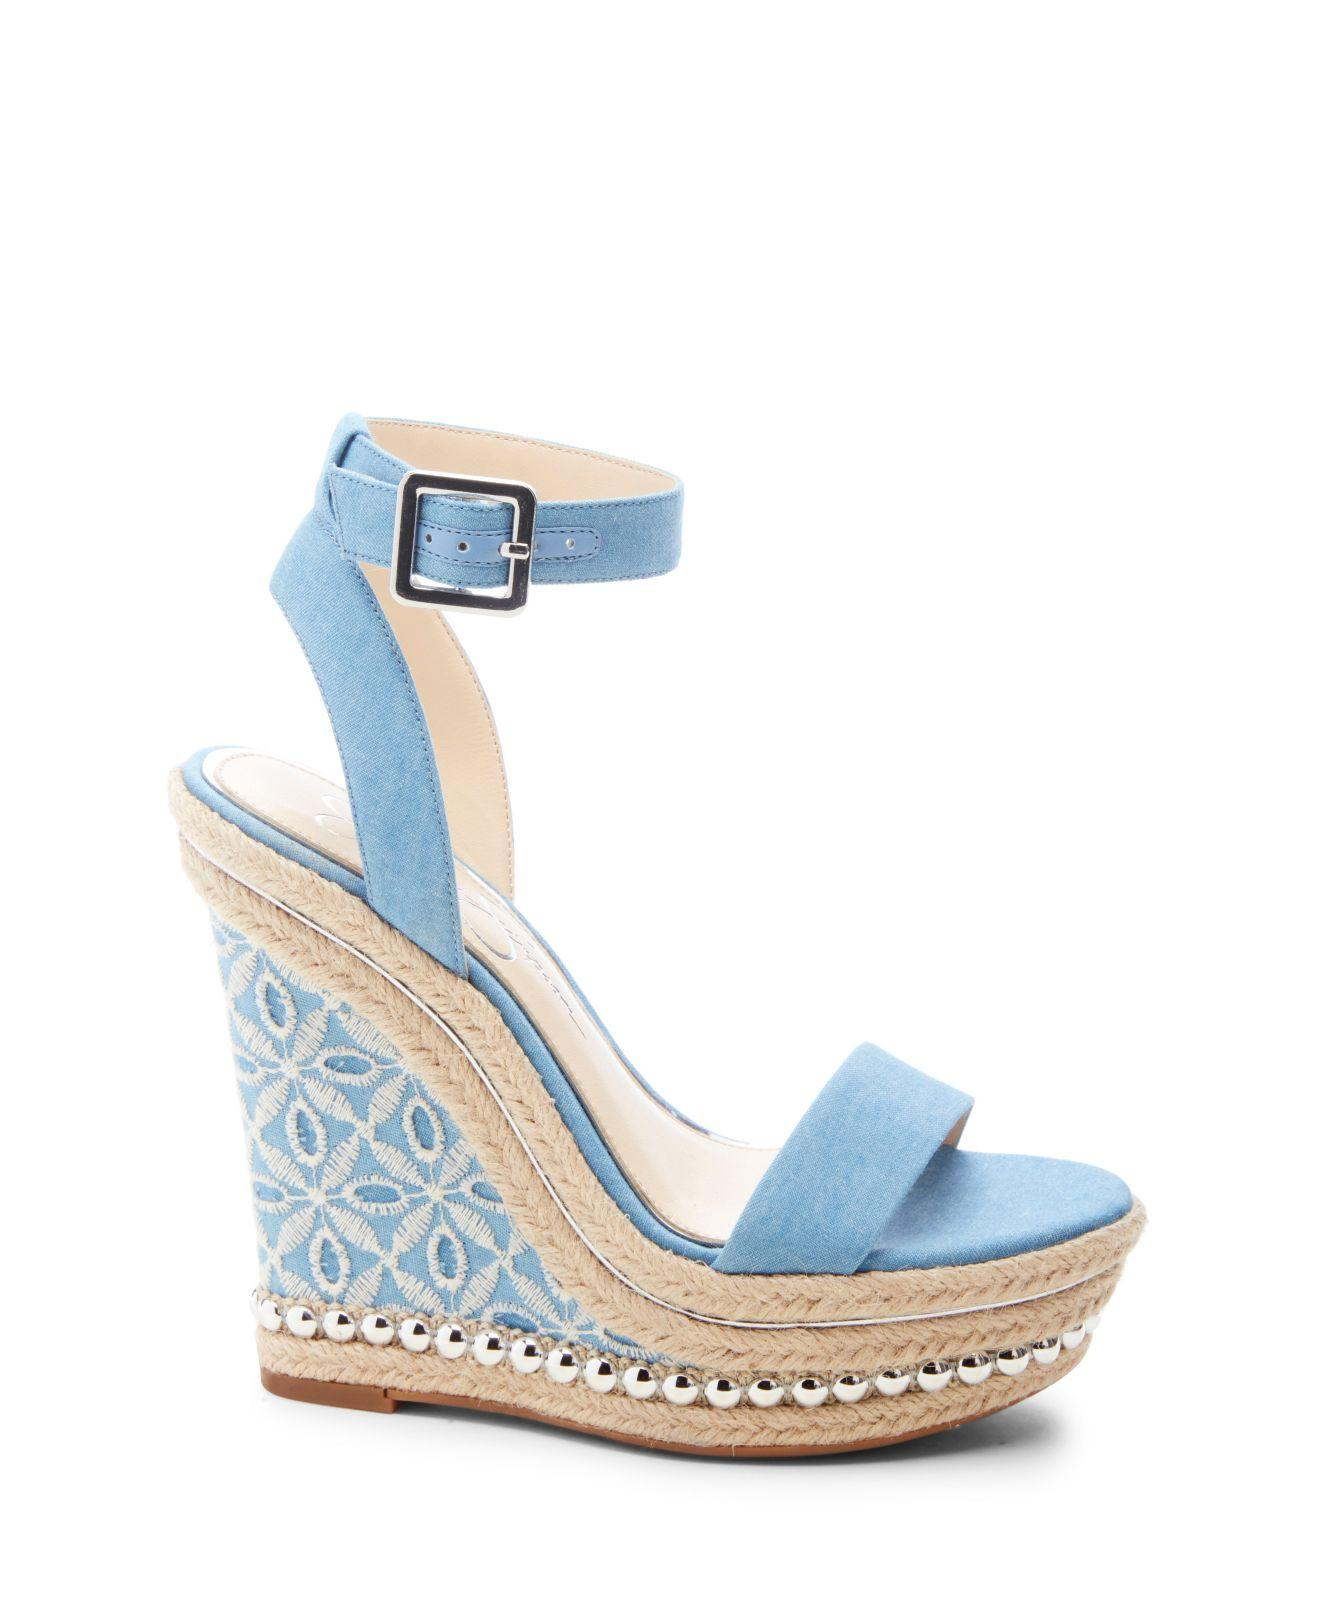 febd73901ec0 Lyst - Jessica Simpson Alinda Woven Platform Wedge Sandals in Blue